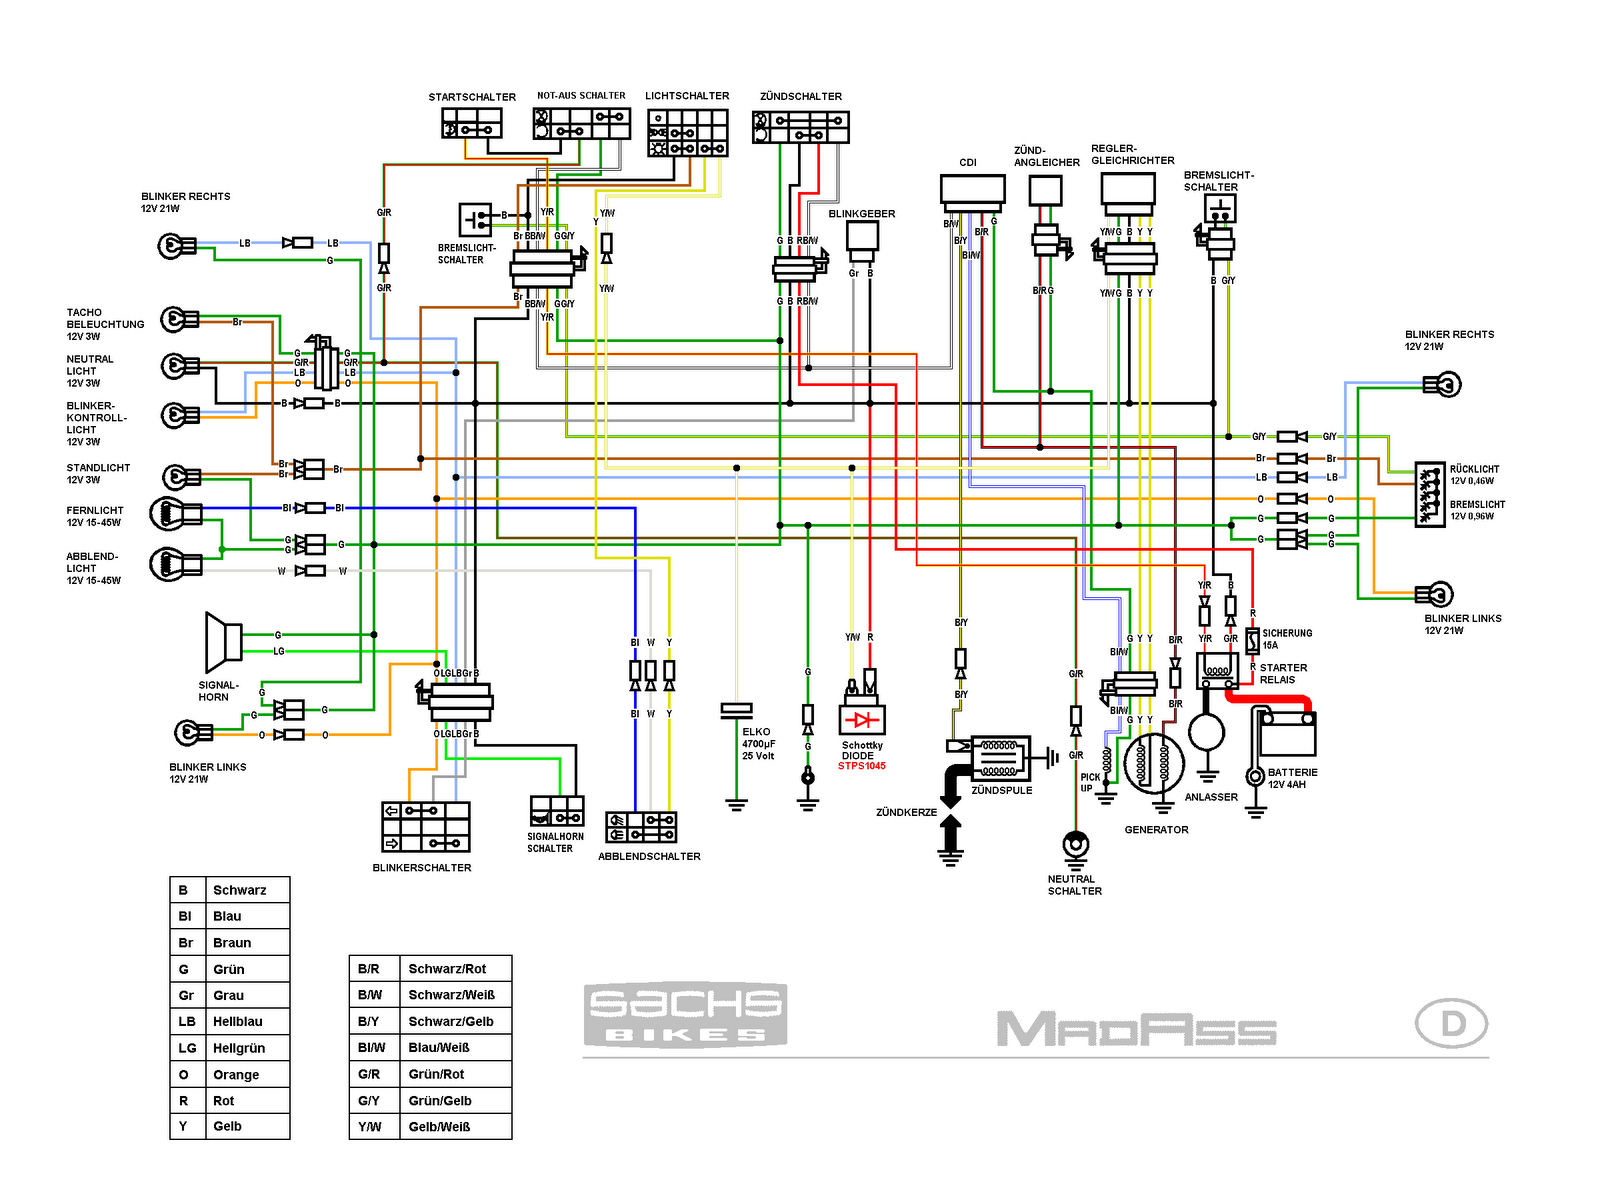 Wiring Diagram For 2005 Suzuki Gsxr 750 Schematics Data 2007 600 Cbr1000rr Free Engine Image User Manual Download 1990 Intruder 07